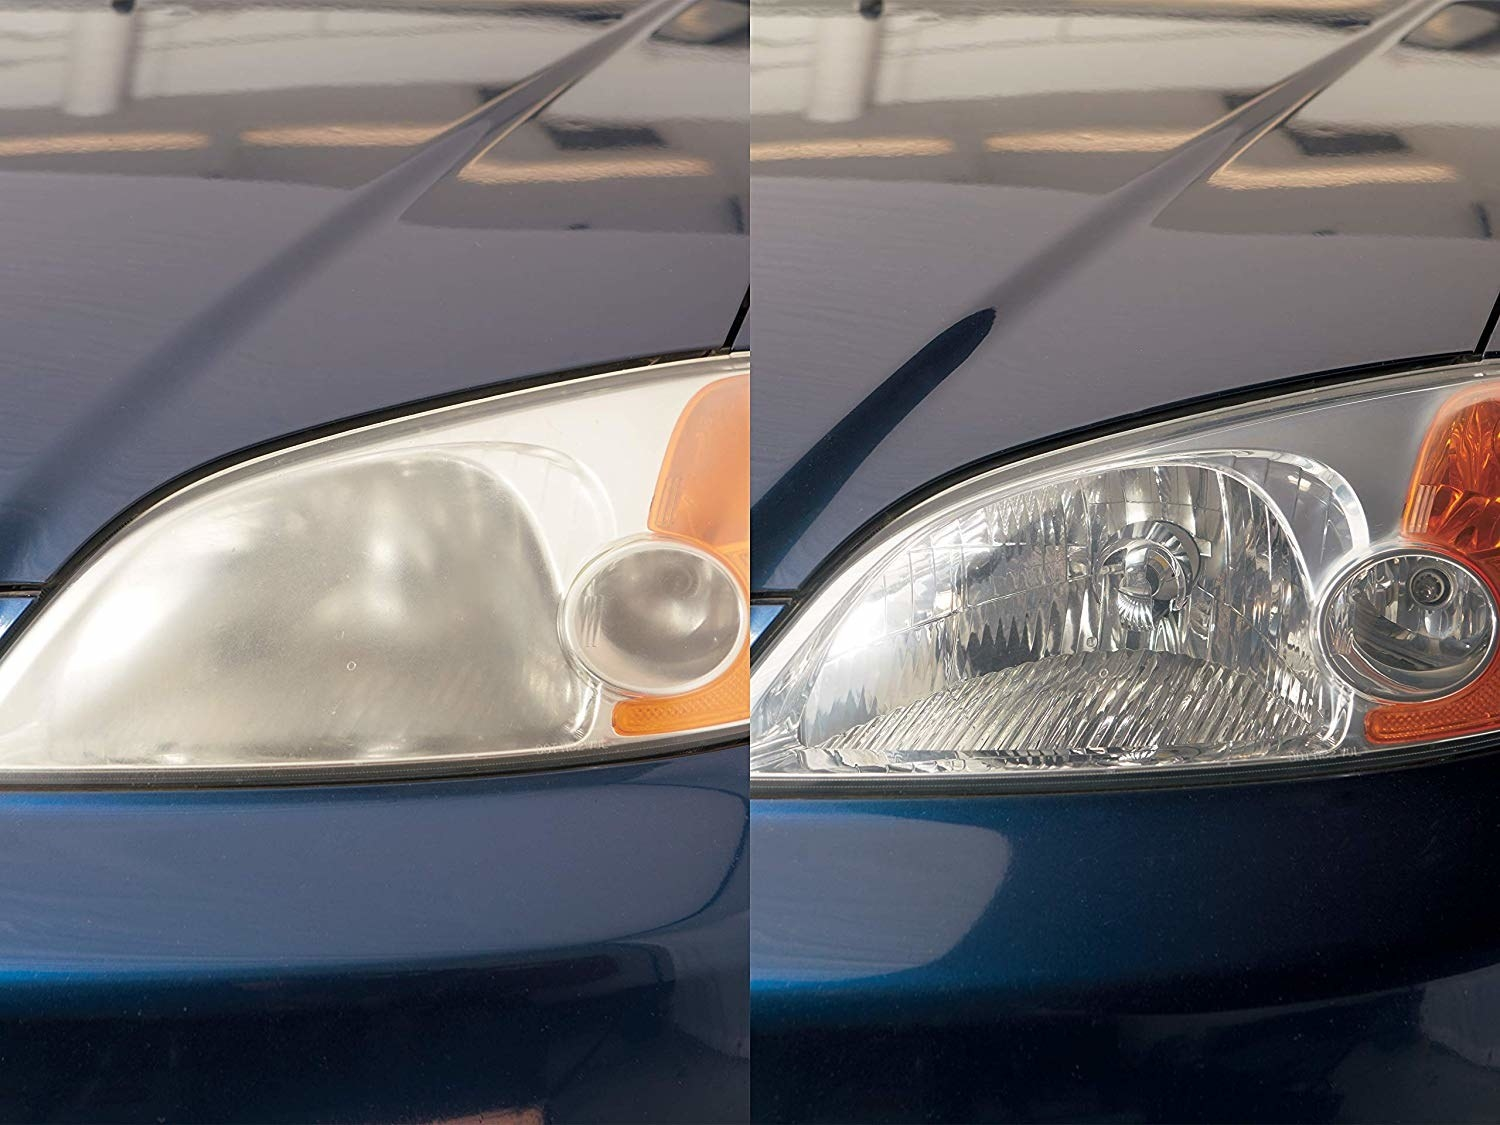 A before and after photo showing the headlights of a car